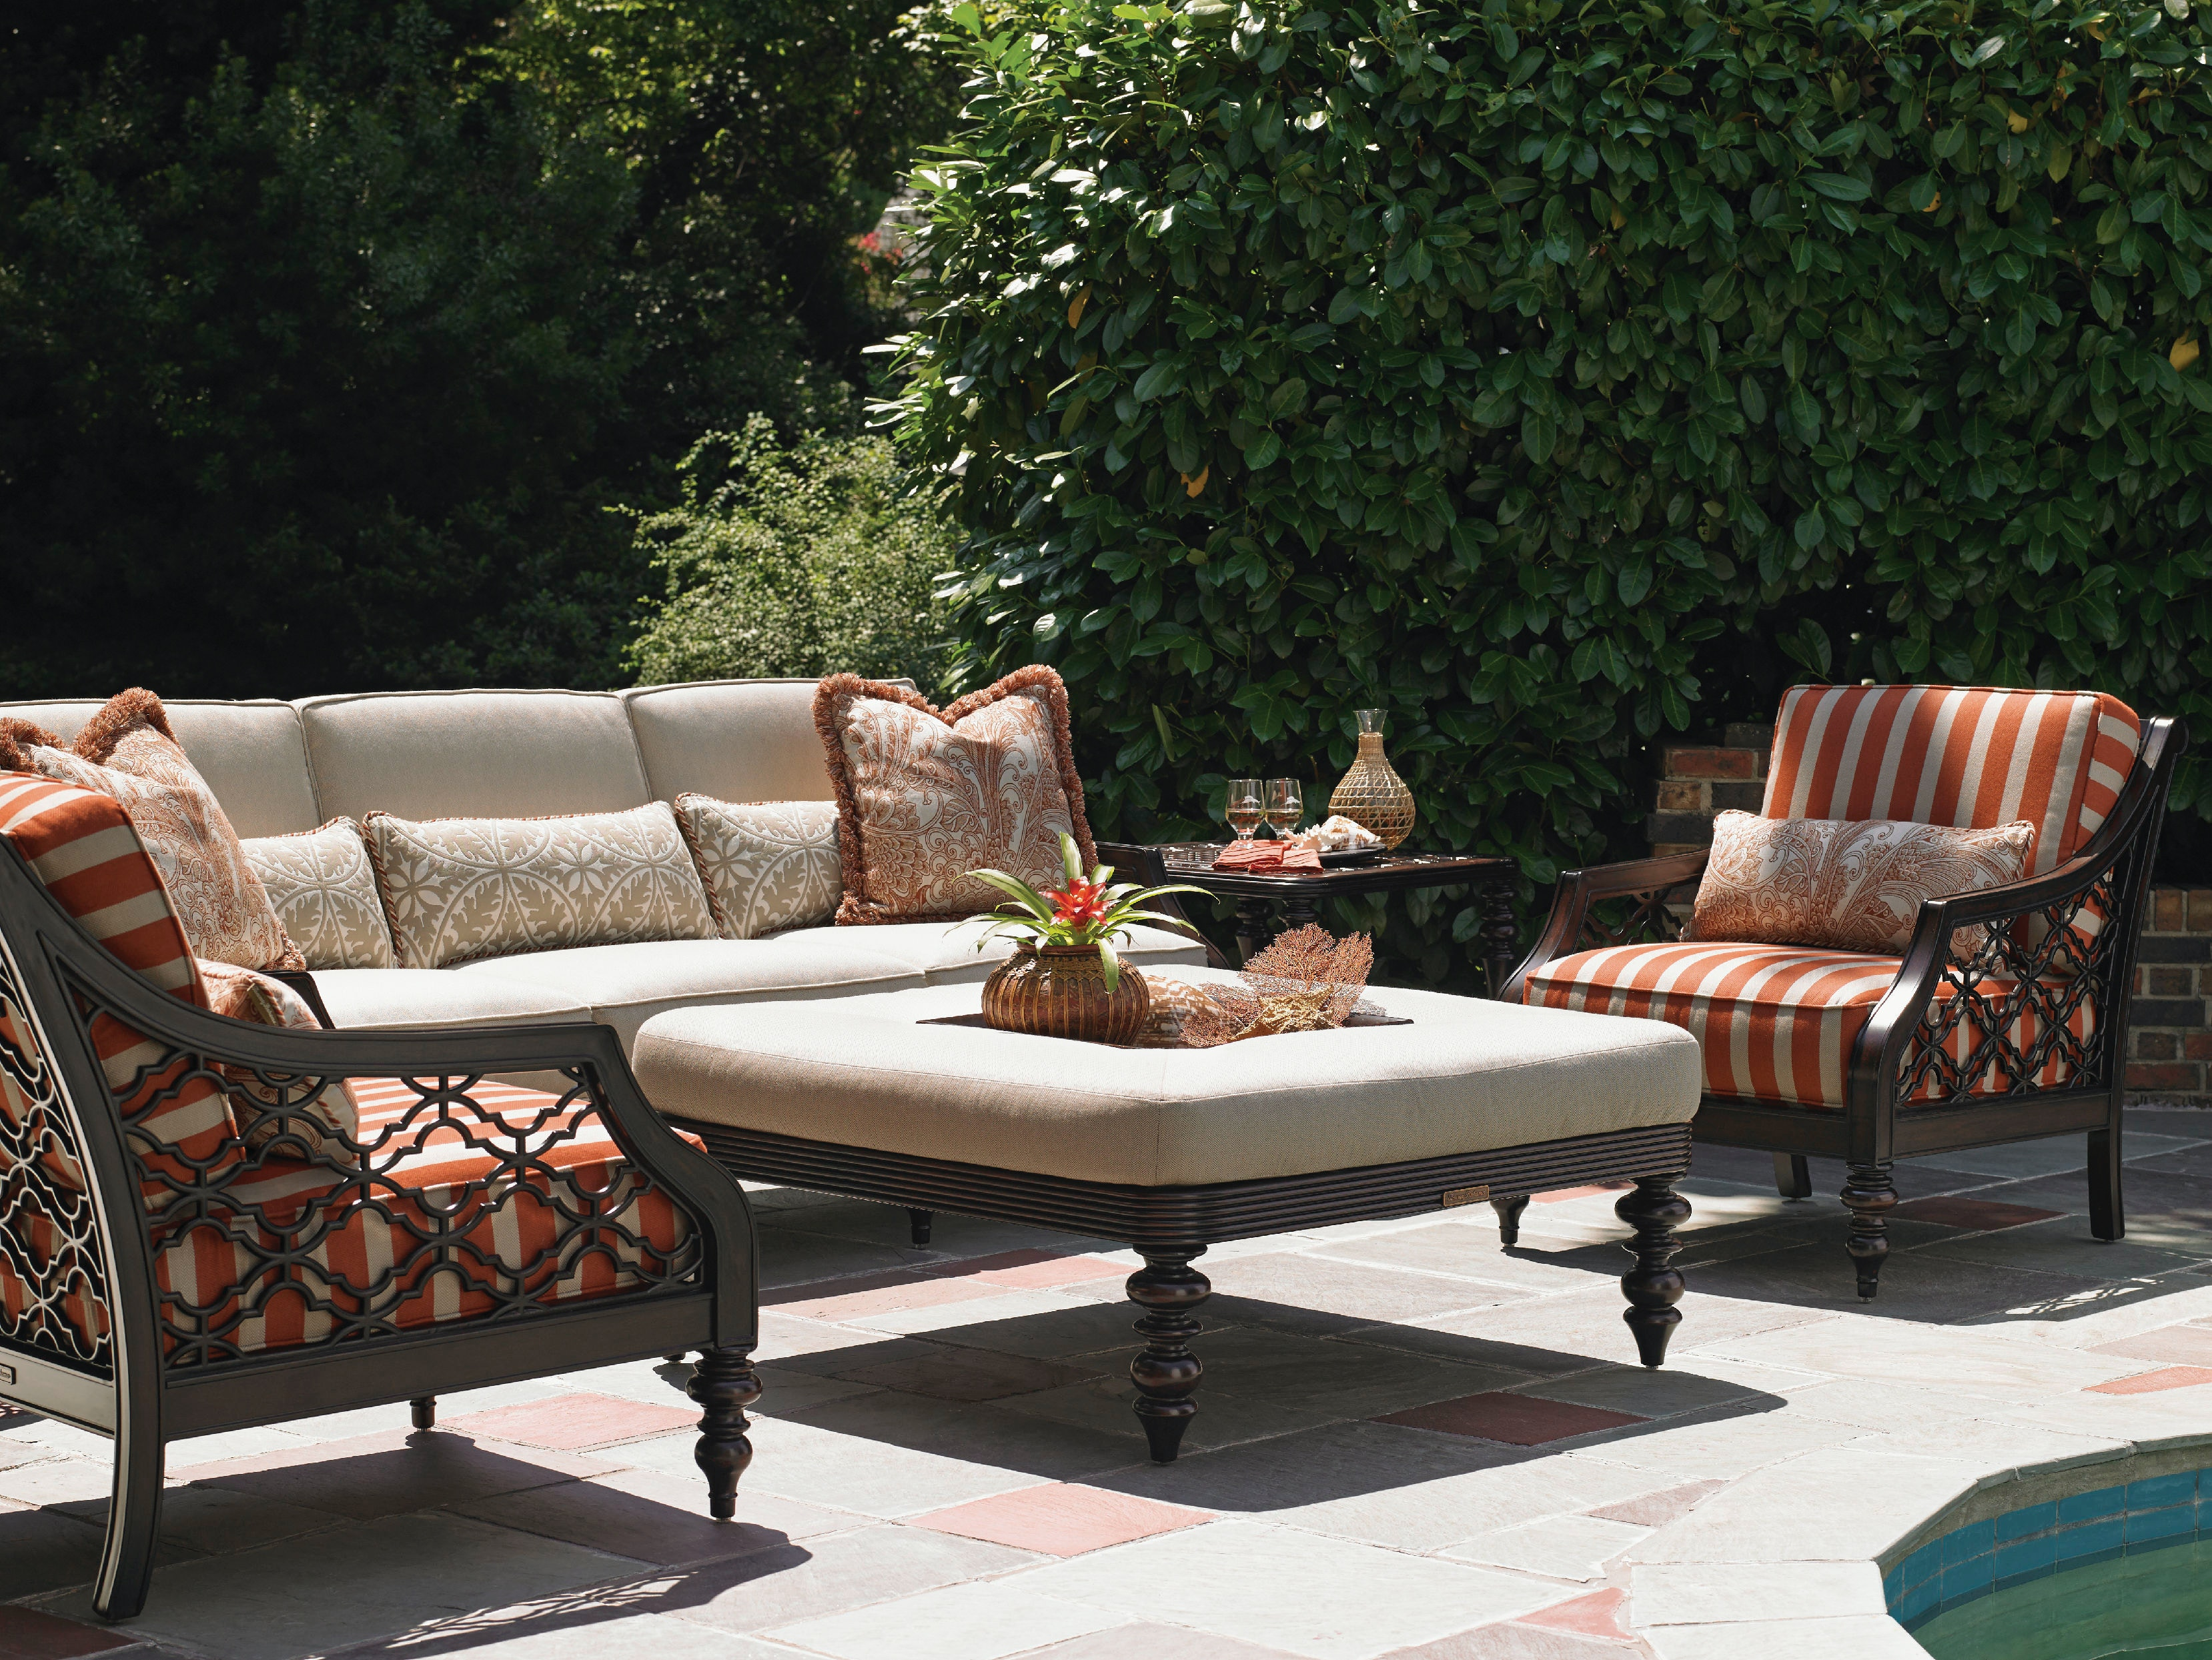 Tommy Bahama Outdoor Living OutdoorPatio Cocktail Ottoman  : 323544rt751271conv from microd.lexington.com size 1024 x 768 jpeg 135kB